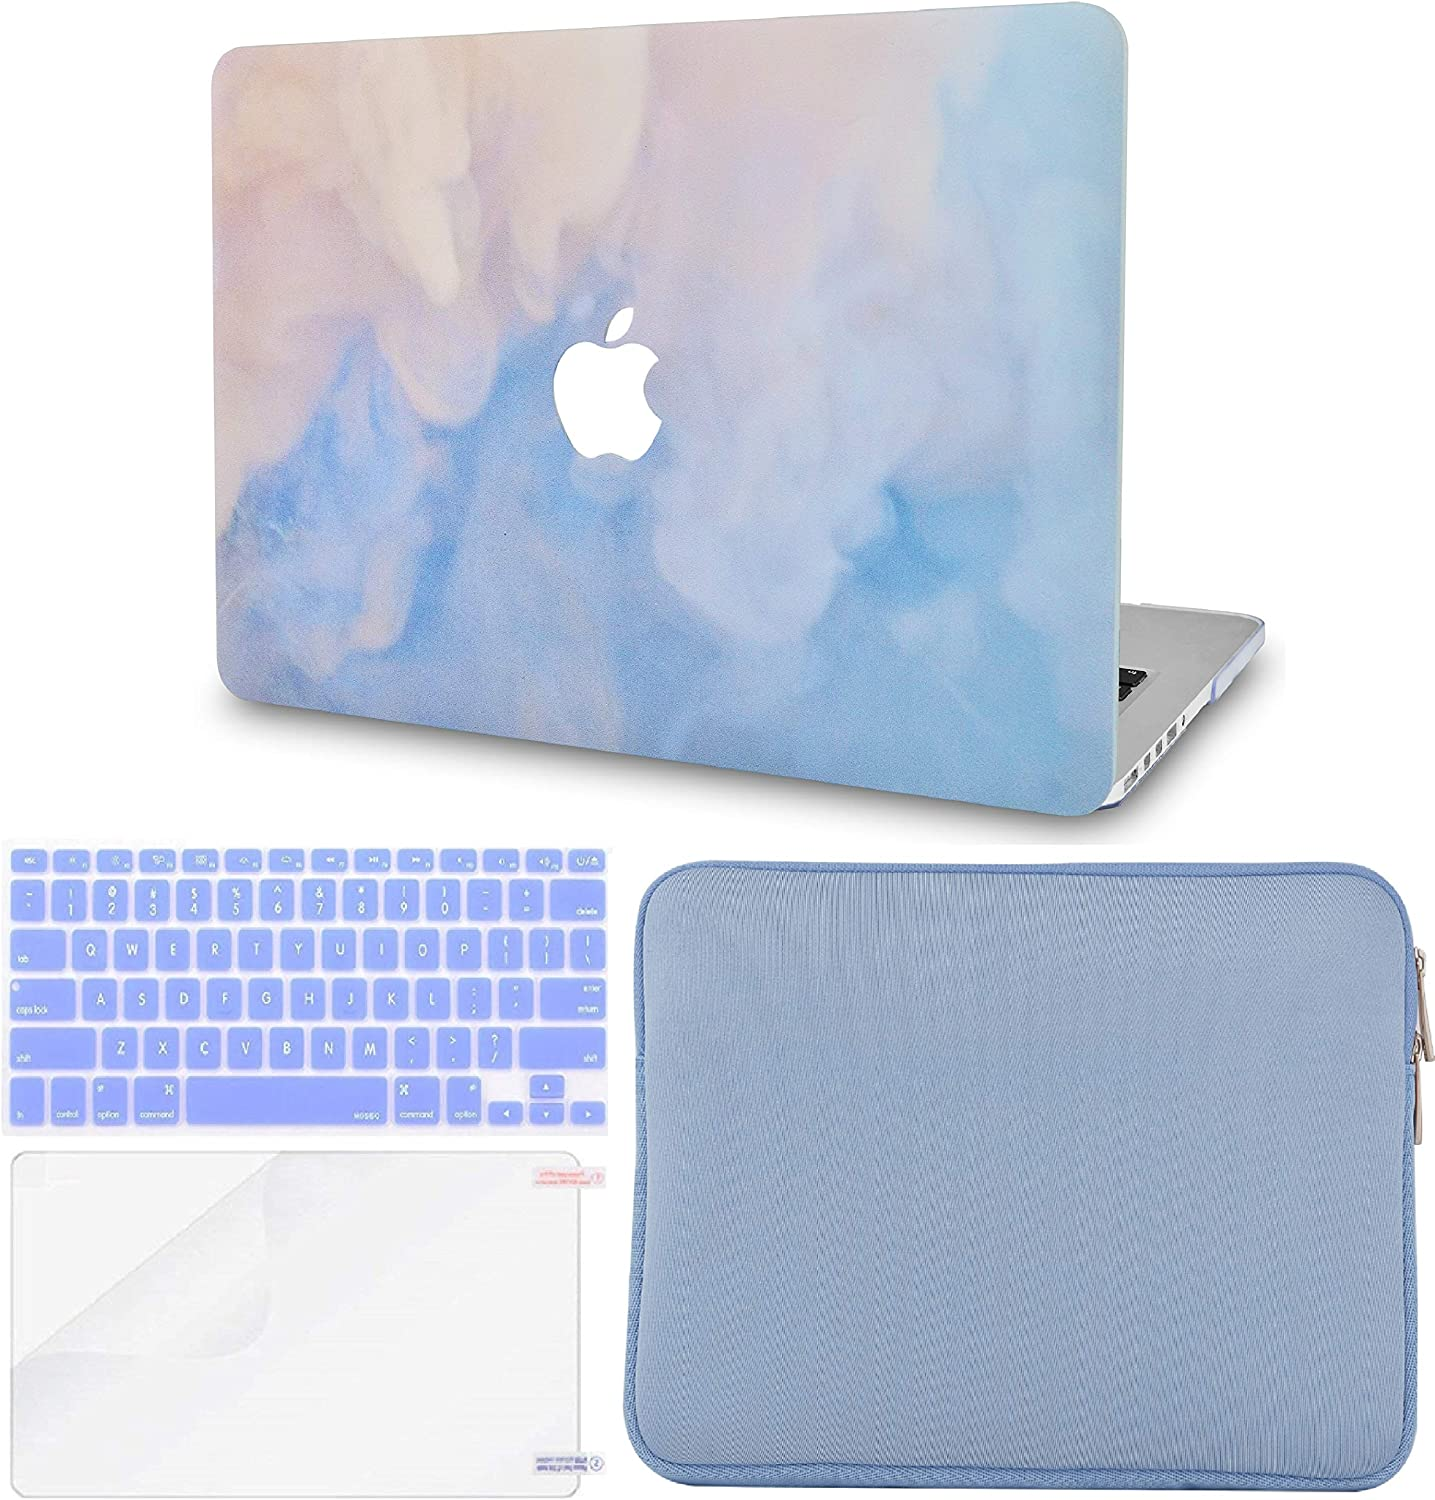 """LuvCase 4in1 LaptopCase forMacBookPro 13""""(2020/2019/2018/2017/2016) w/wo Touch Bar A2159/A1989/A1706/A1708 HardShell Cover, Slim Sleeve, Keyboard Cover & Screen Protector (Blue Mist)"""